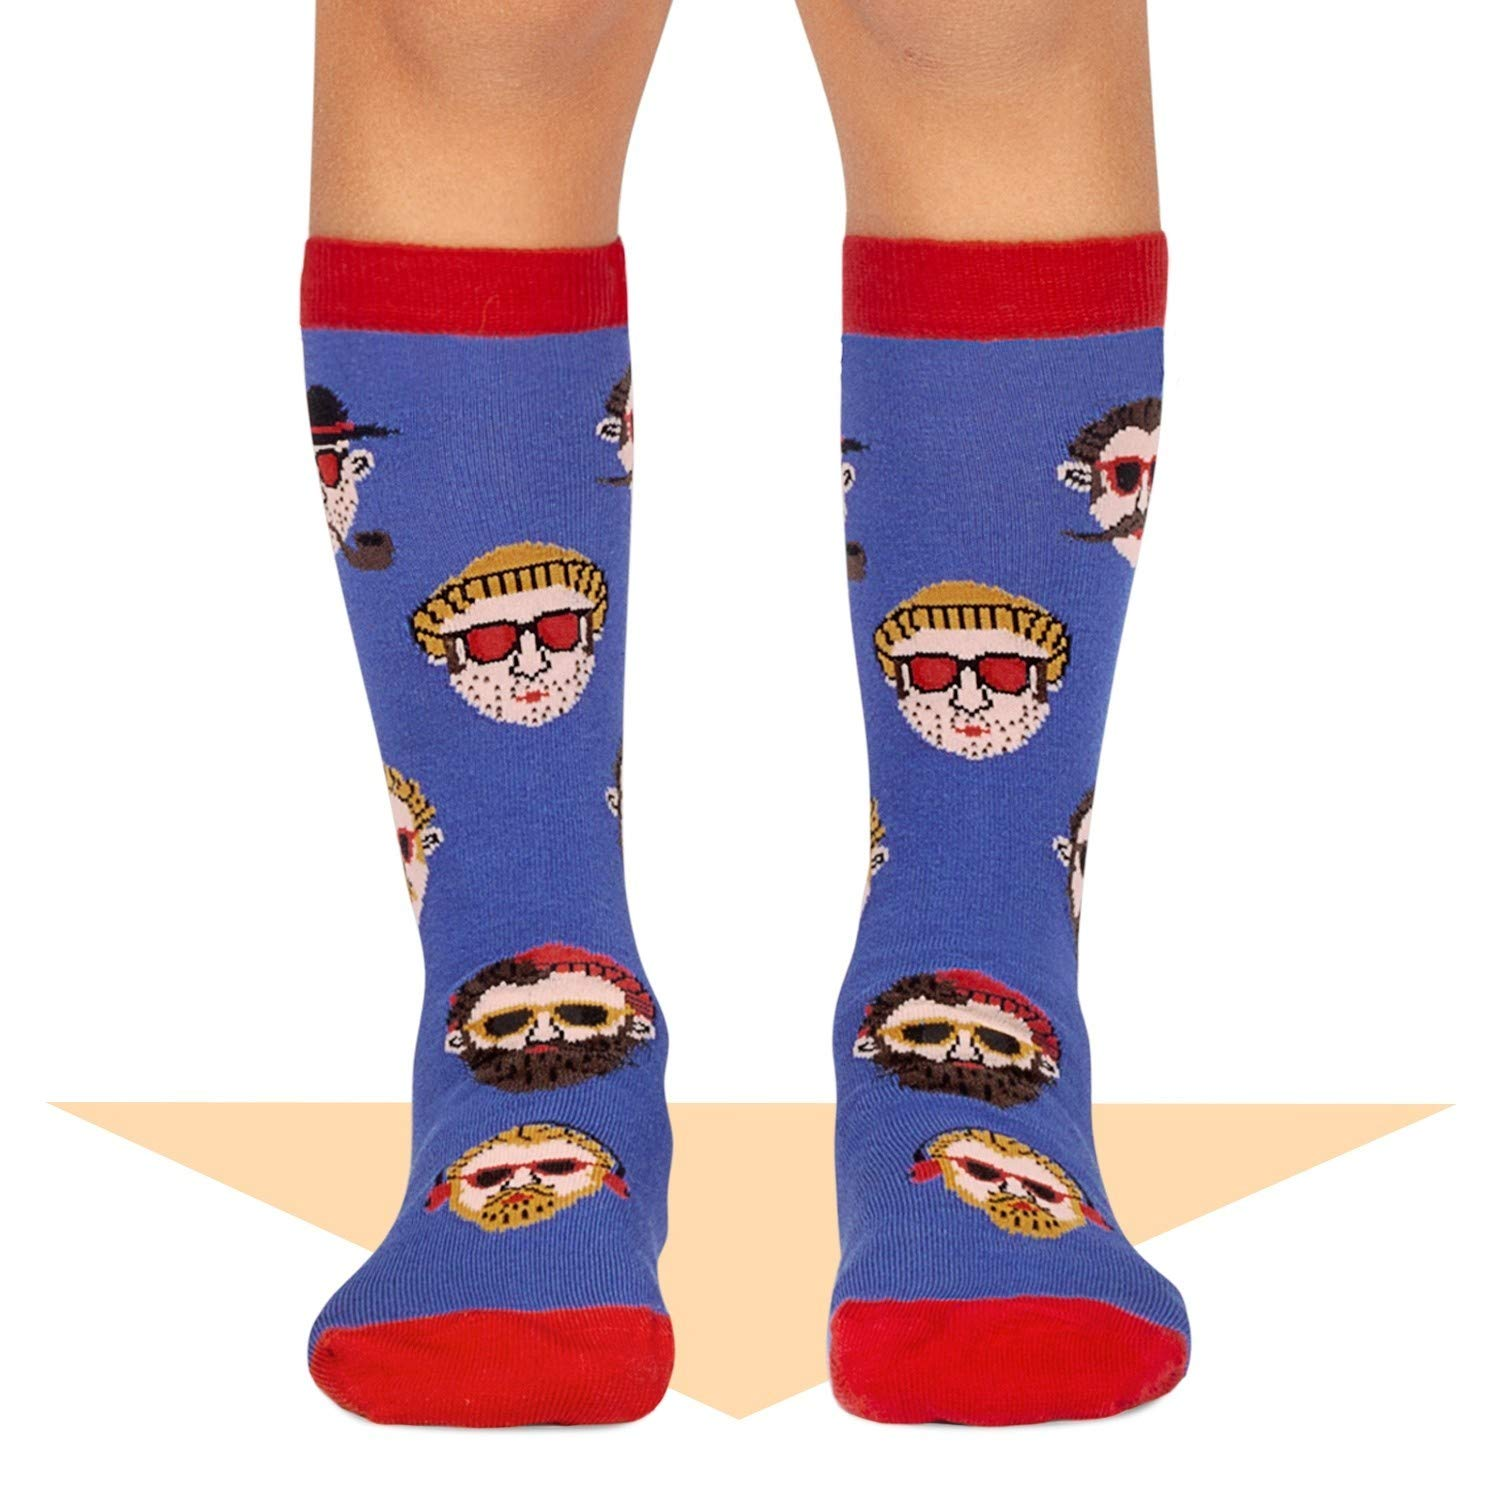 Jimmy Lion Calcetines Hipster Chico Azul Talla 36-40: Amazon.es: Ropa y accesorios